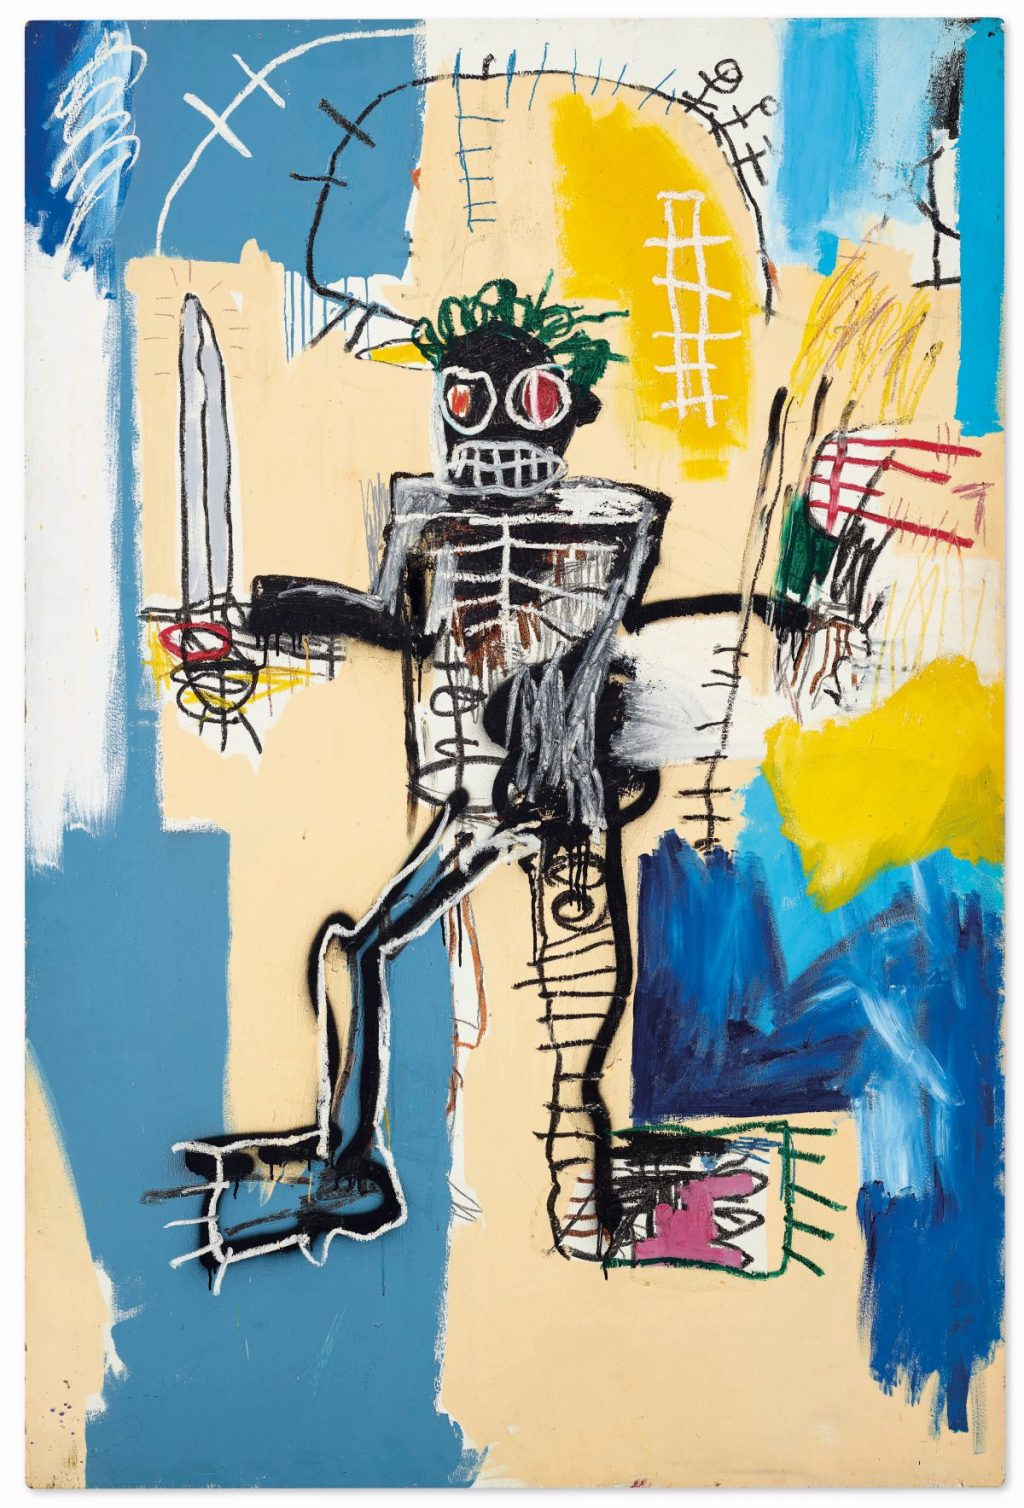 $31 M. Basquiat Poised to Sell at Christie's in Hong Kong – ARTnews.com